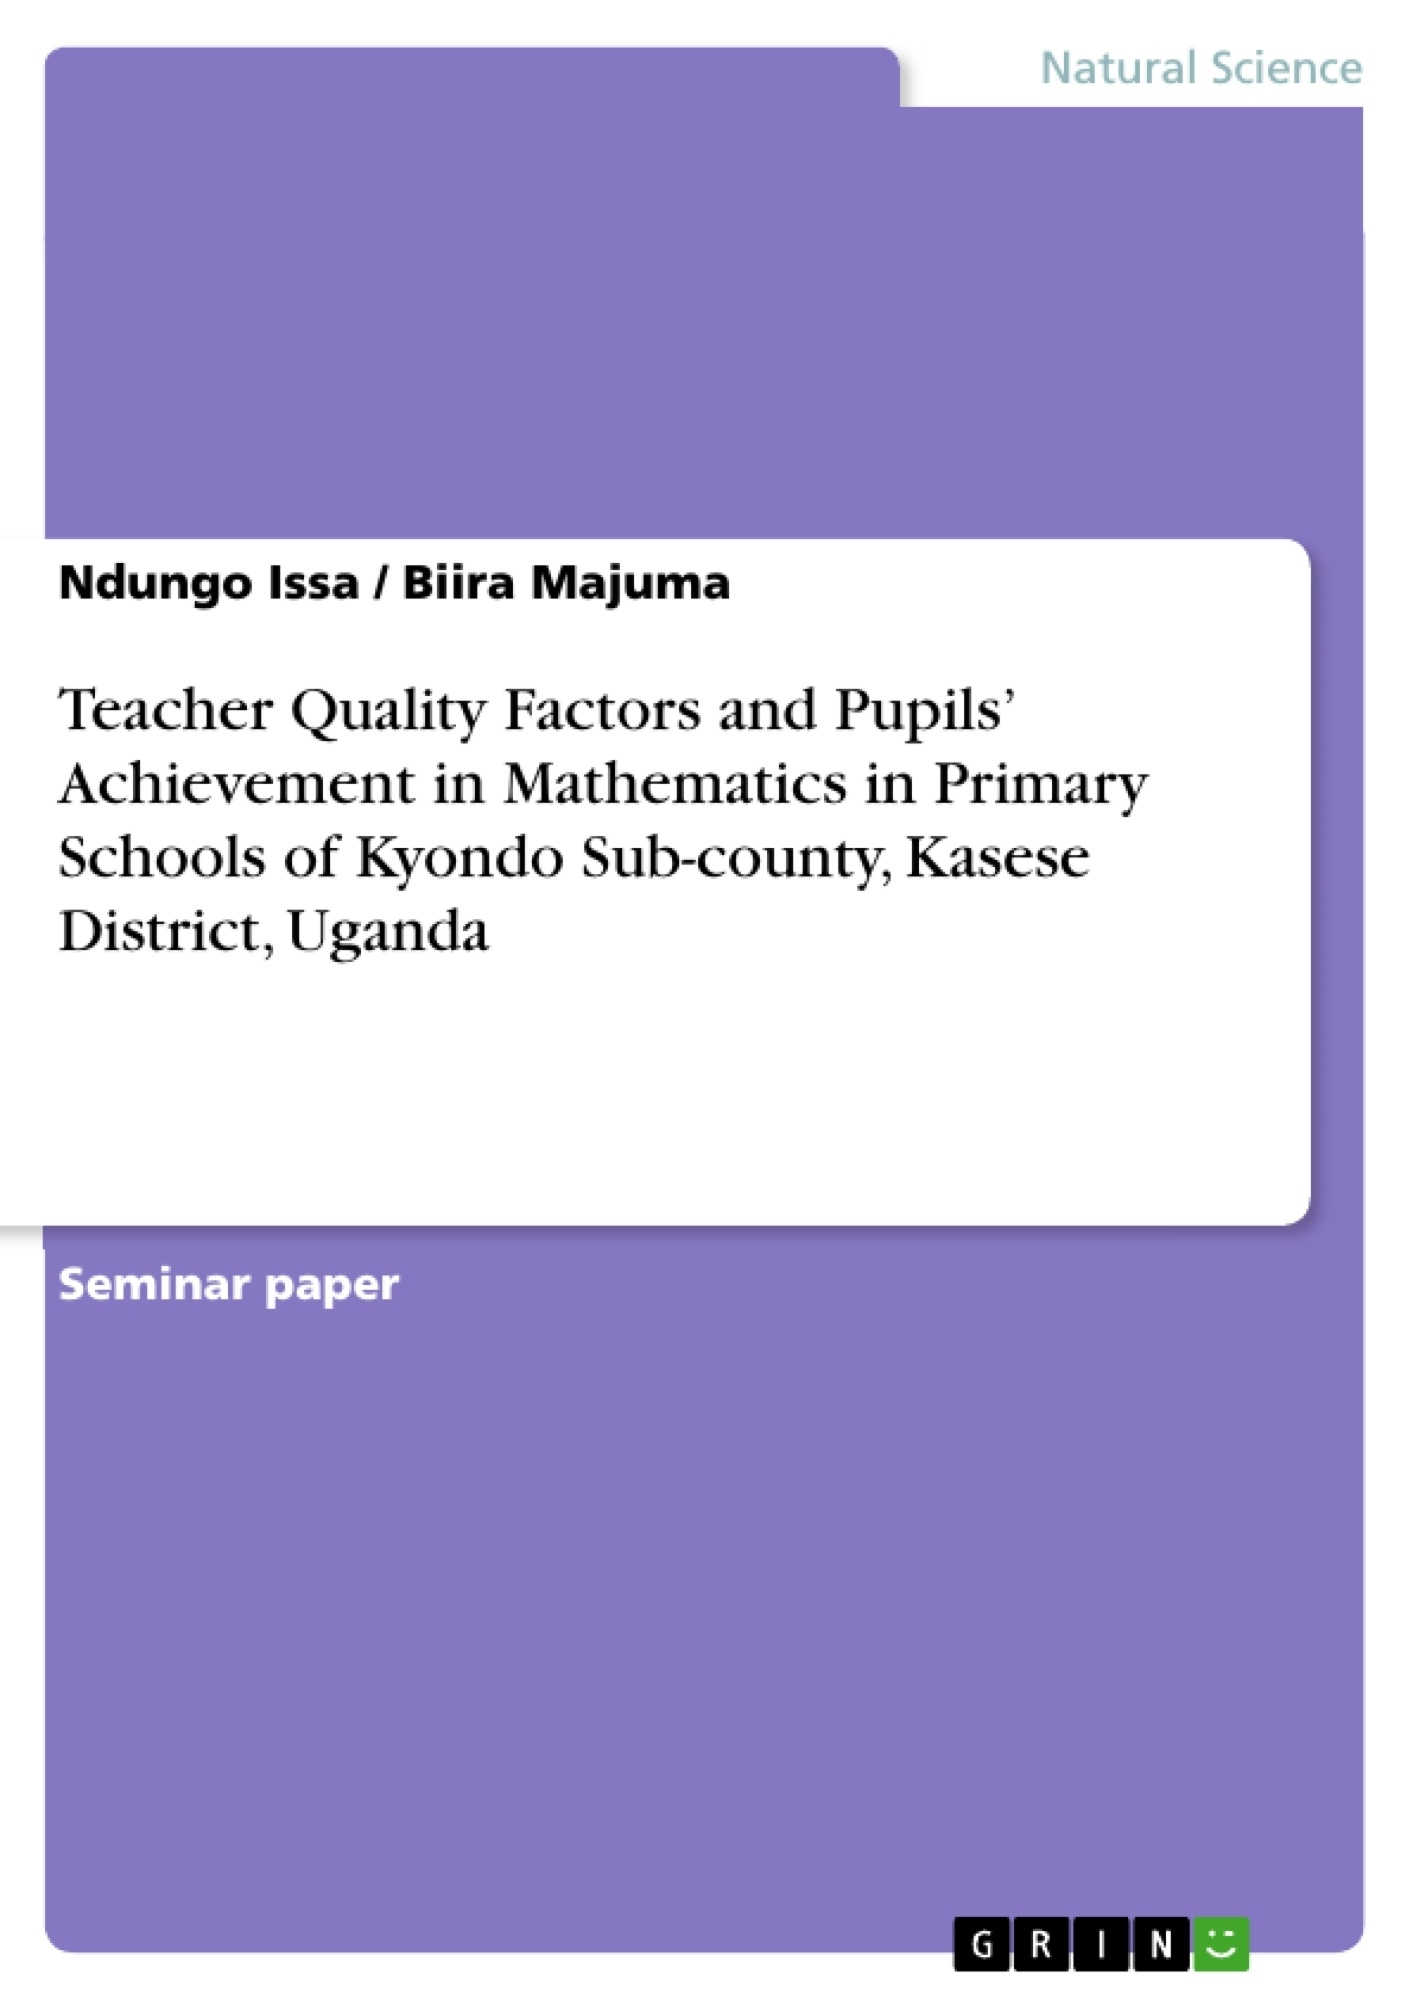 Title: Teacher Quality Factors and Pupils' Achievement in Mathematics in Primary Schools of Kyondo Sub-county, Kasese District, Uganda